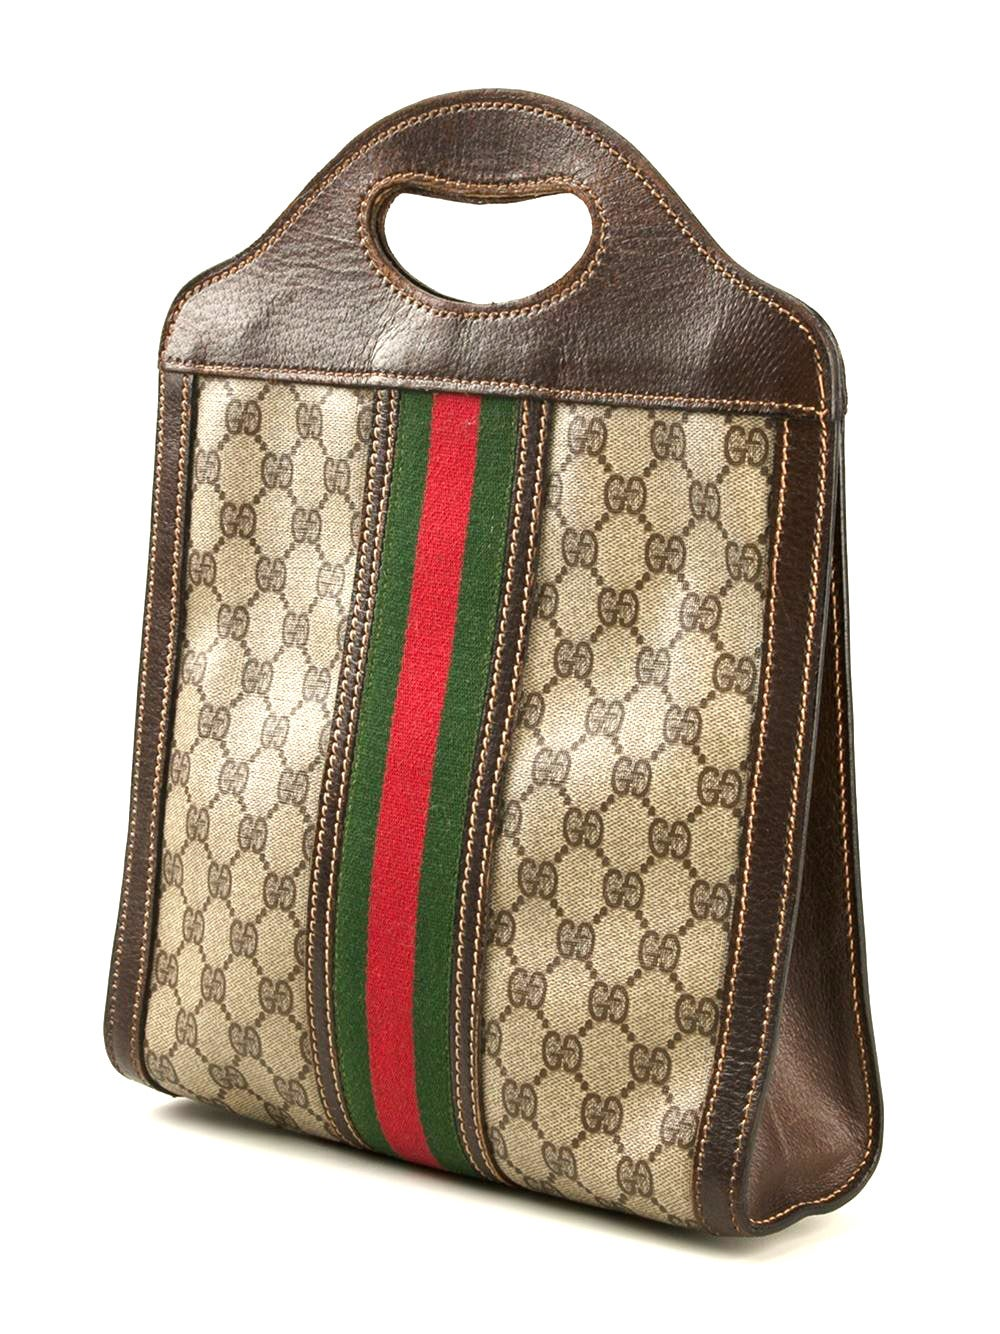 Brown cotton monogram cabas bag from Gucci Vintage circa 1970, made in Italy, featuring top handles and an internal logo stamp. 36cm x 17,5cm x 6cm.